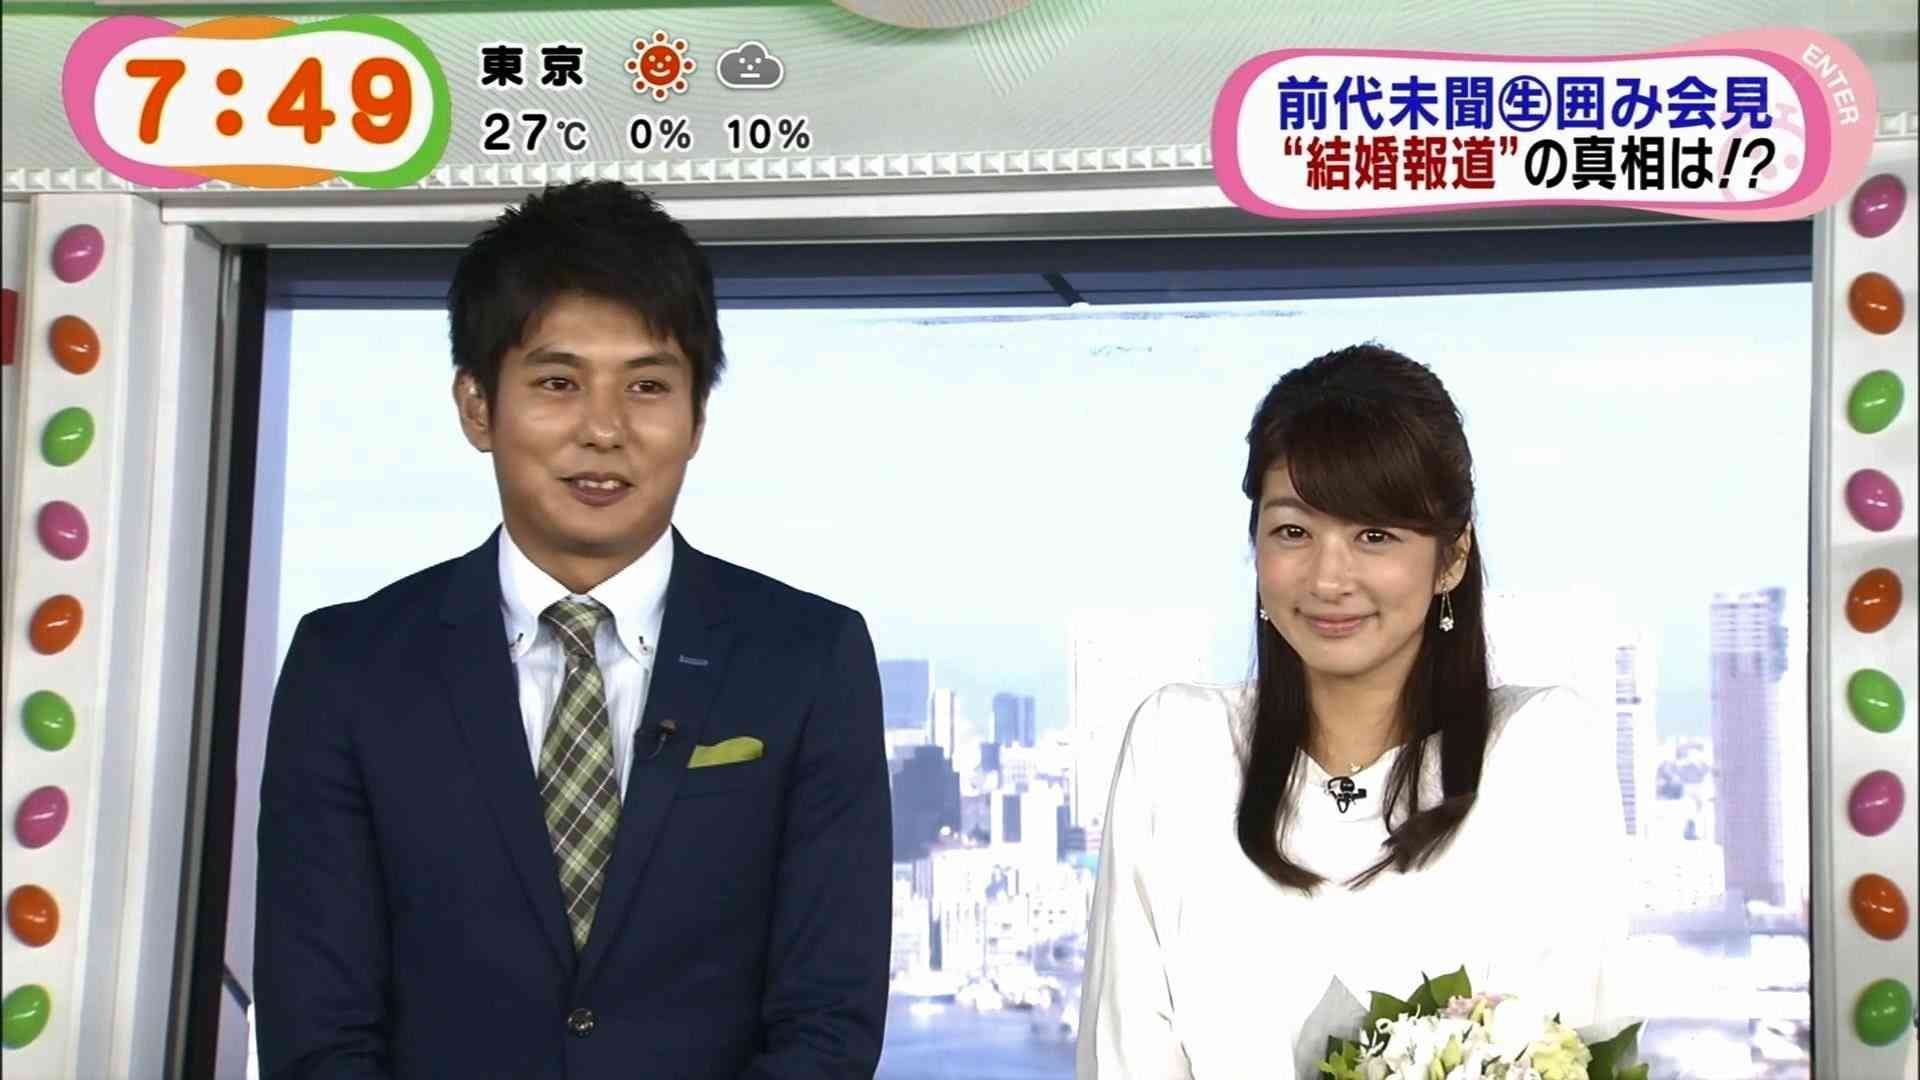 active ikuna anna married life are you pregnant 4129e8346ce2149aee446cd23db24377 823 - 活躍中の生野アナ 結婚生活は?妊娠してる?